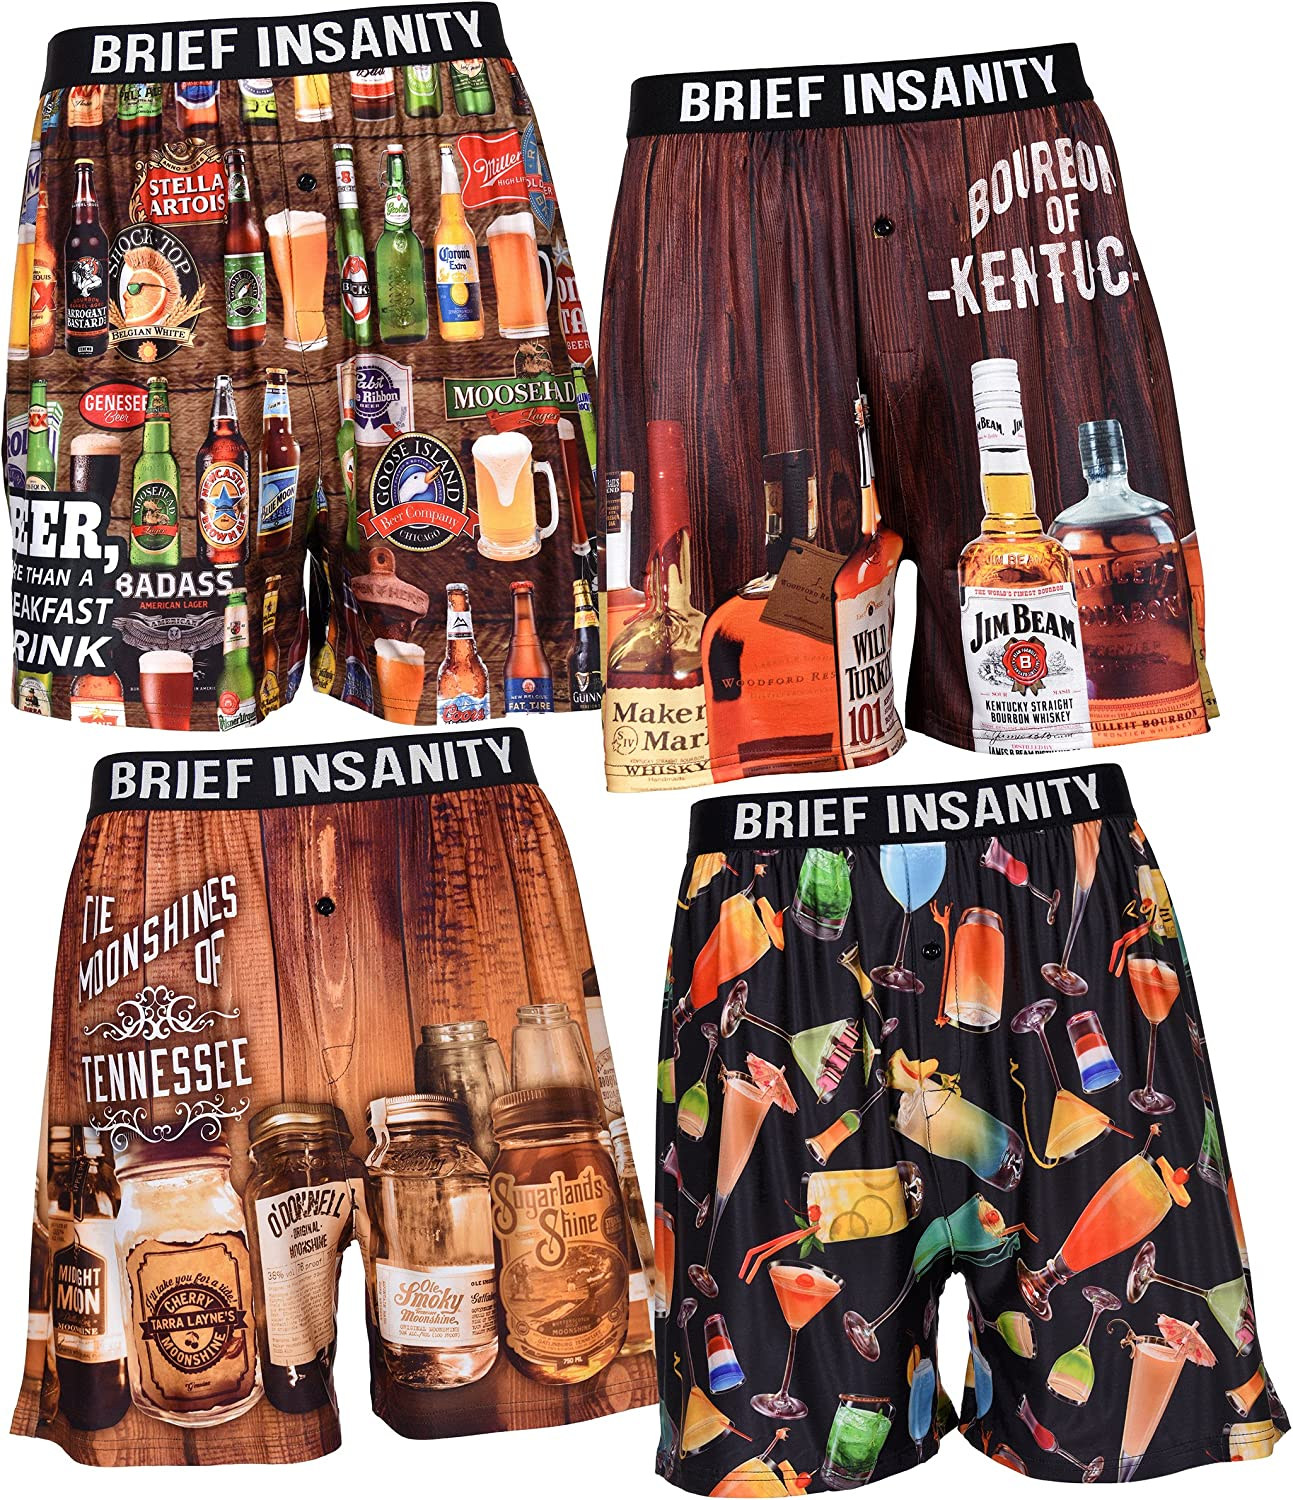 Brief Insanity Mens Boxer Shorts Underwear Bourbons Beers Moonshines /& Cocktails X-Large, BIBXR - Moonshines Of Tennessee